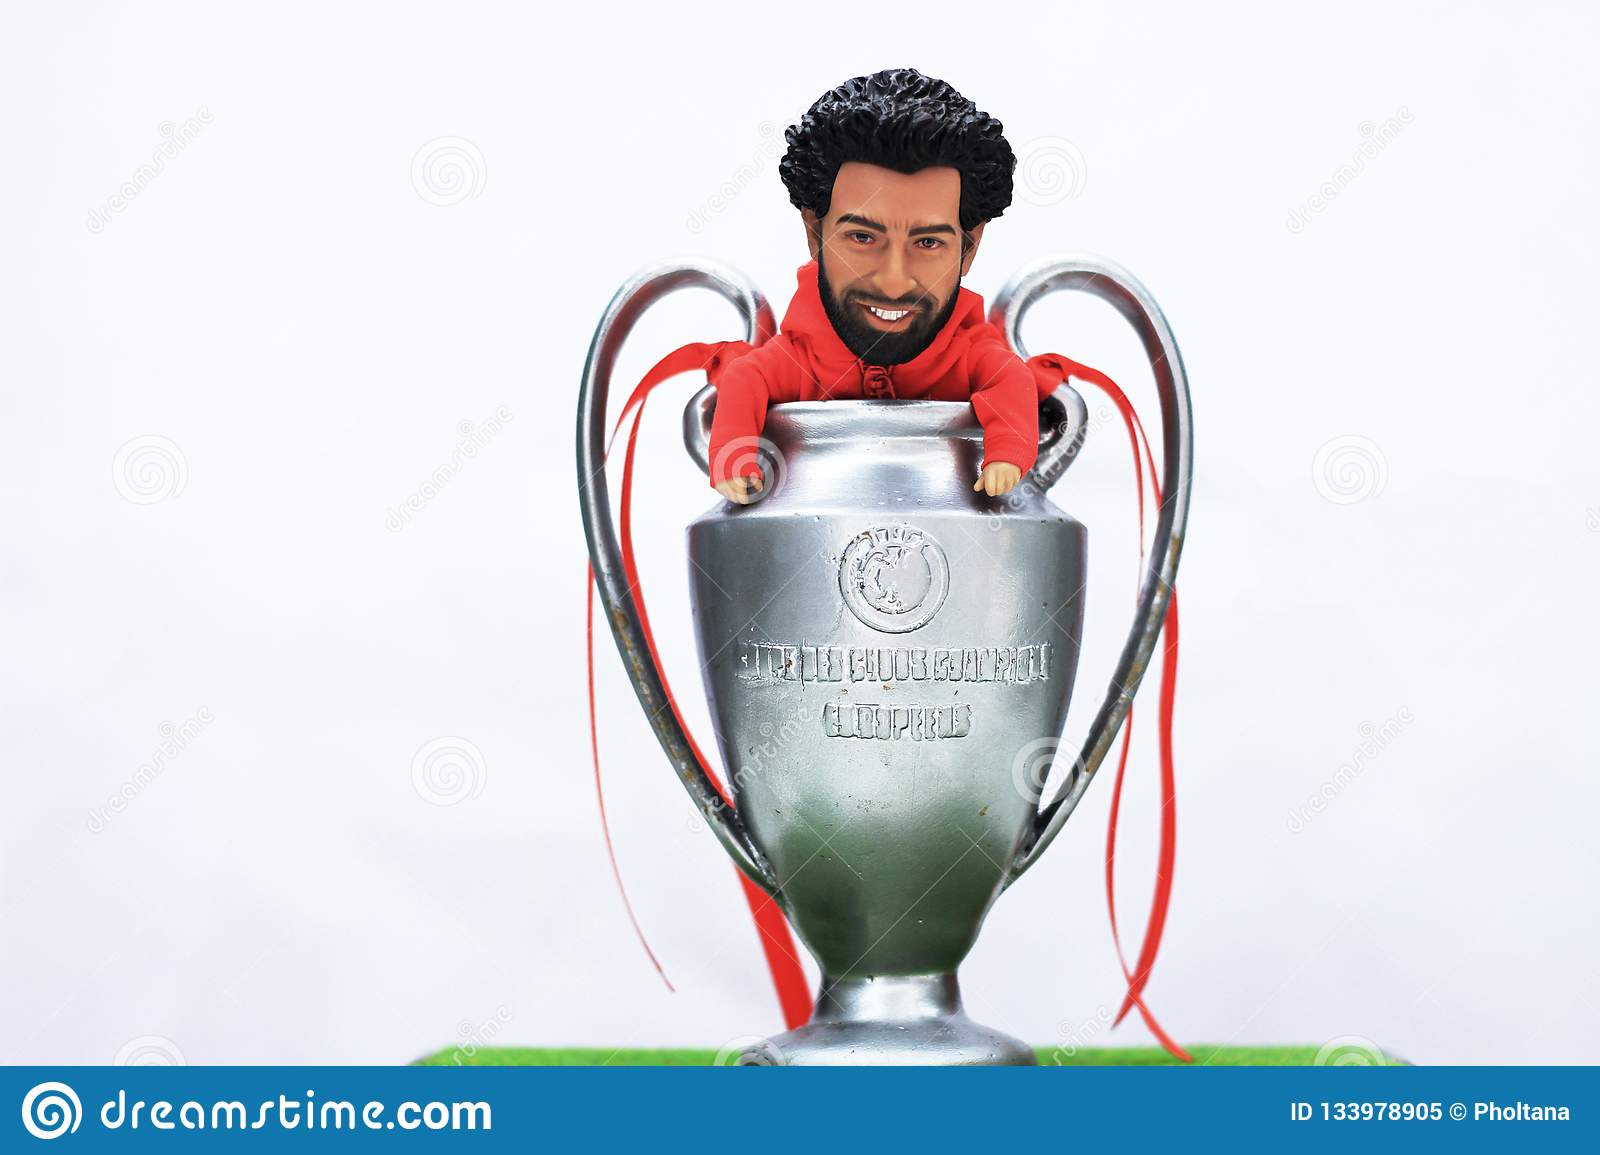 Model Figure Mohamed Salah with Uefa Champions league Trofhy